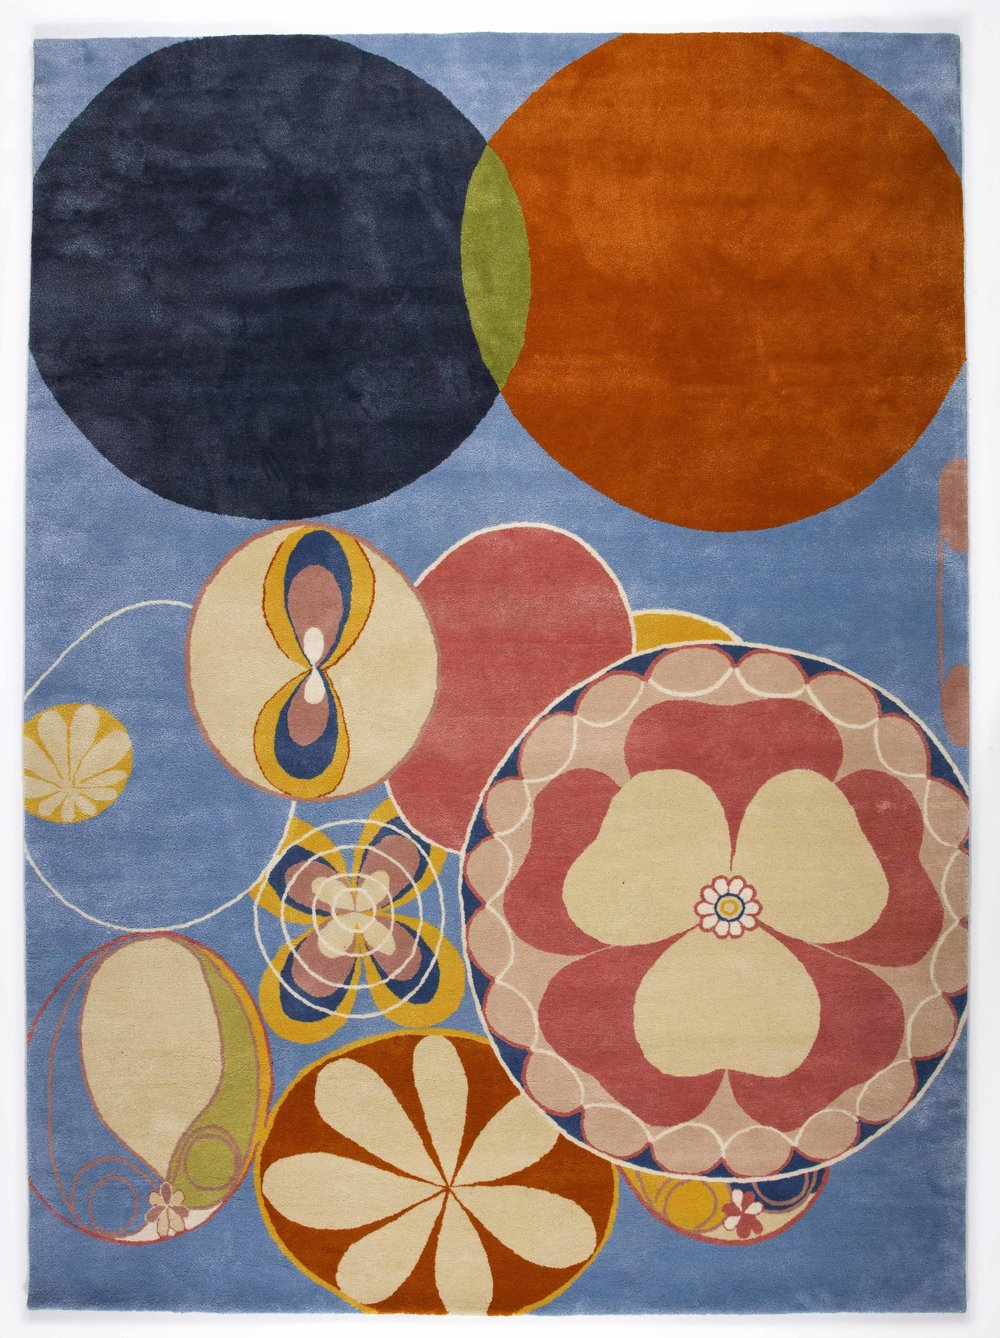 Hilma af Klint   Group IV, no 2. The Ten Largest, Youth  234 x 315 cm Edition 10 75% New Zealand wool, 25% silk Handknotted